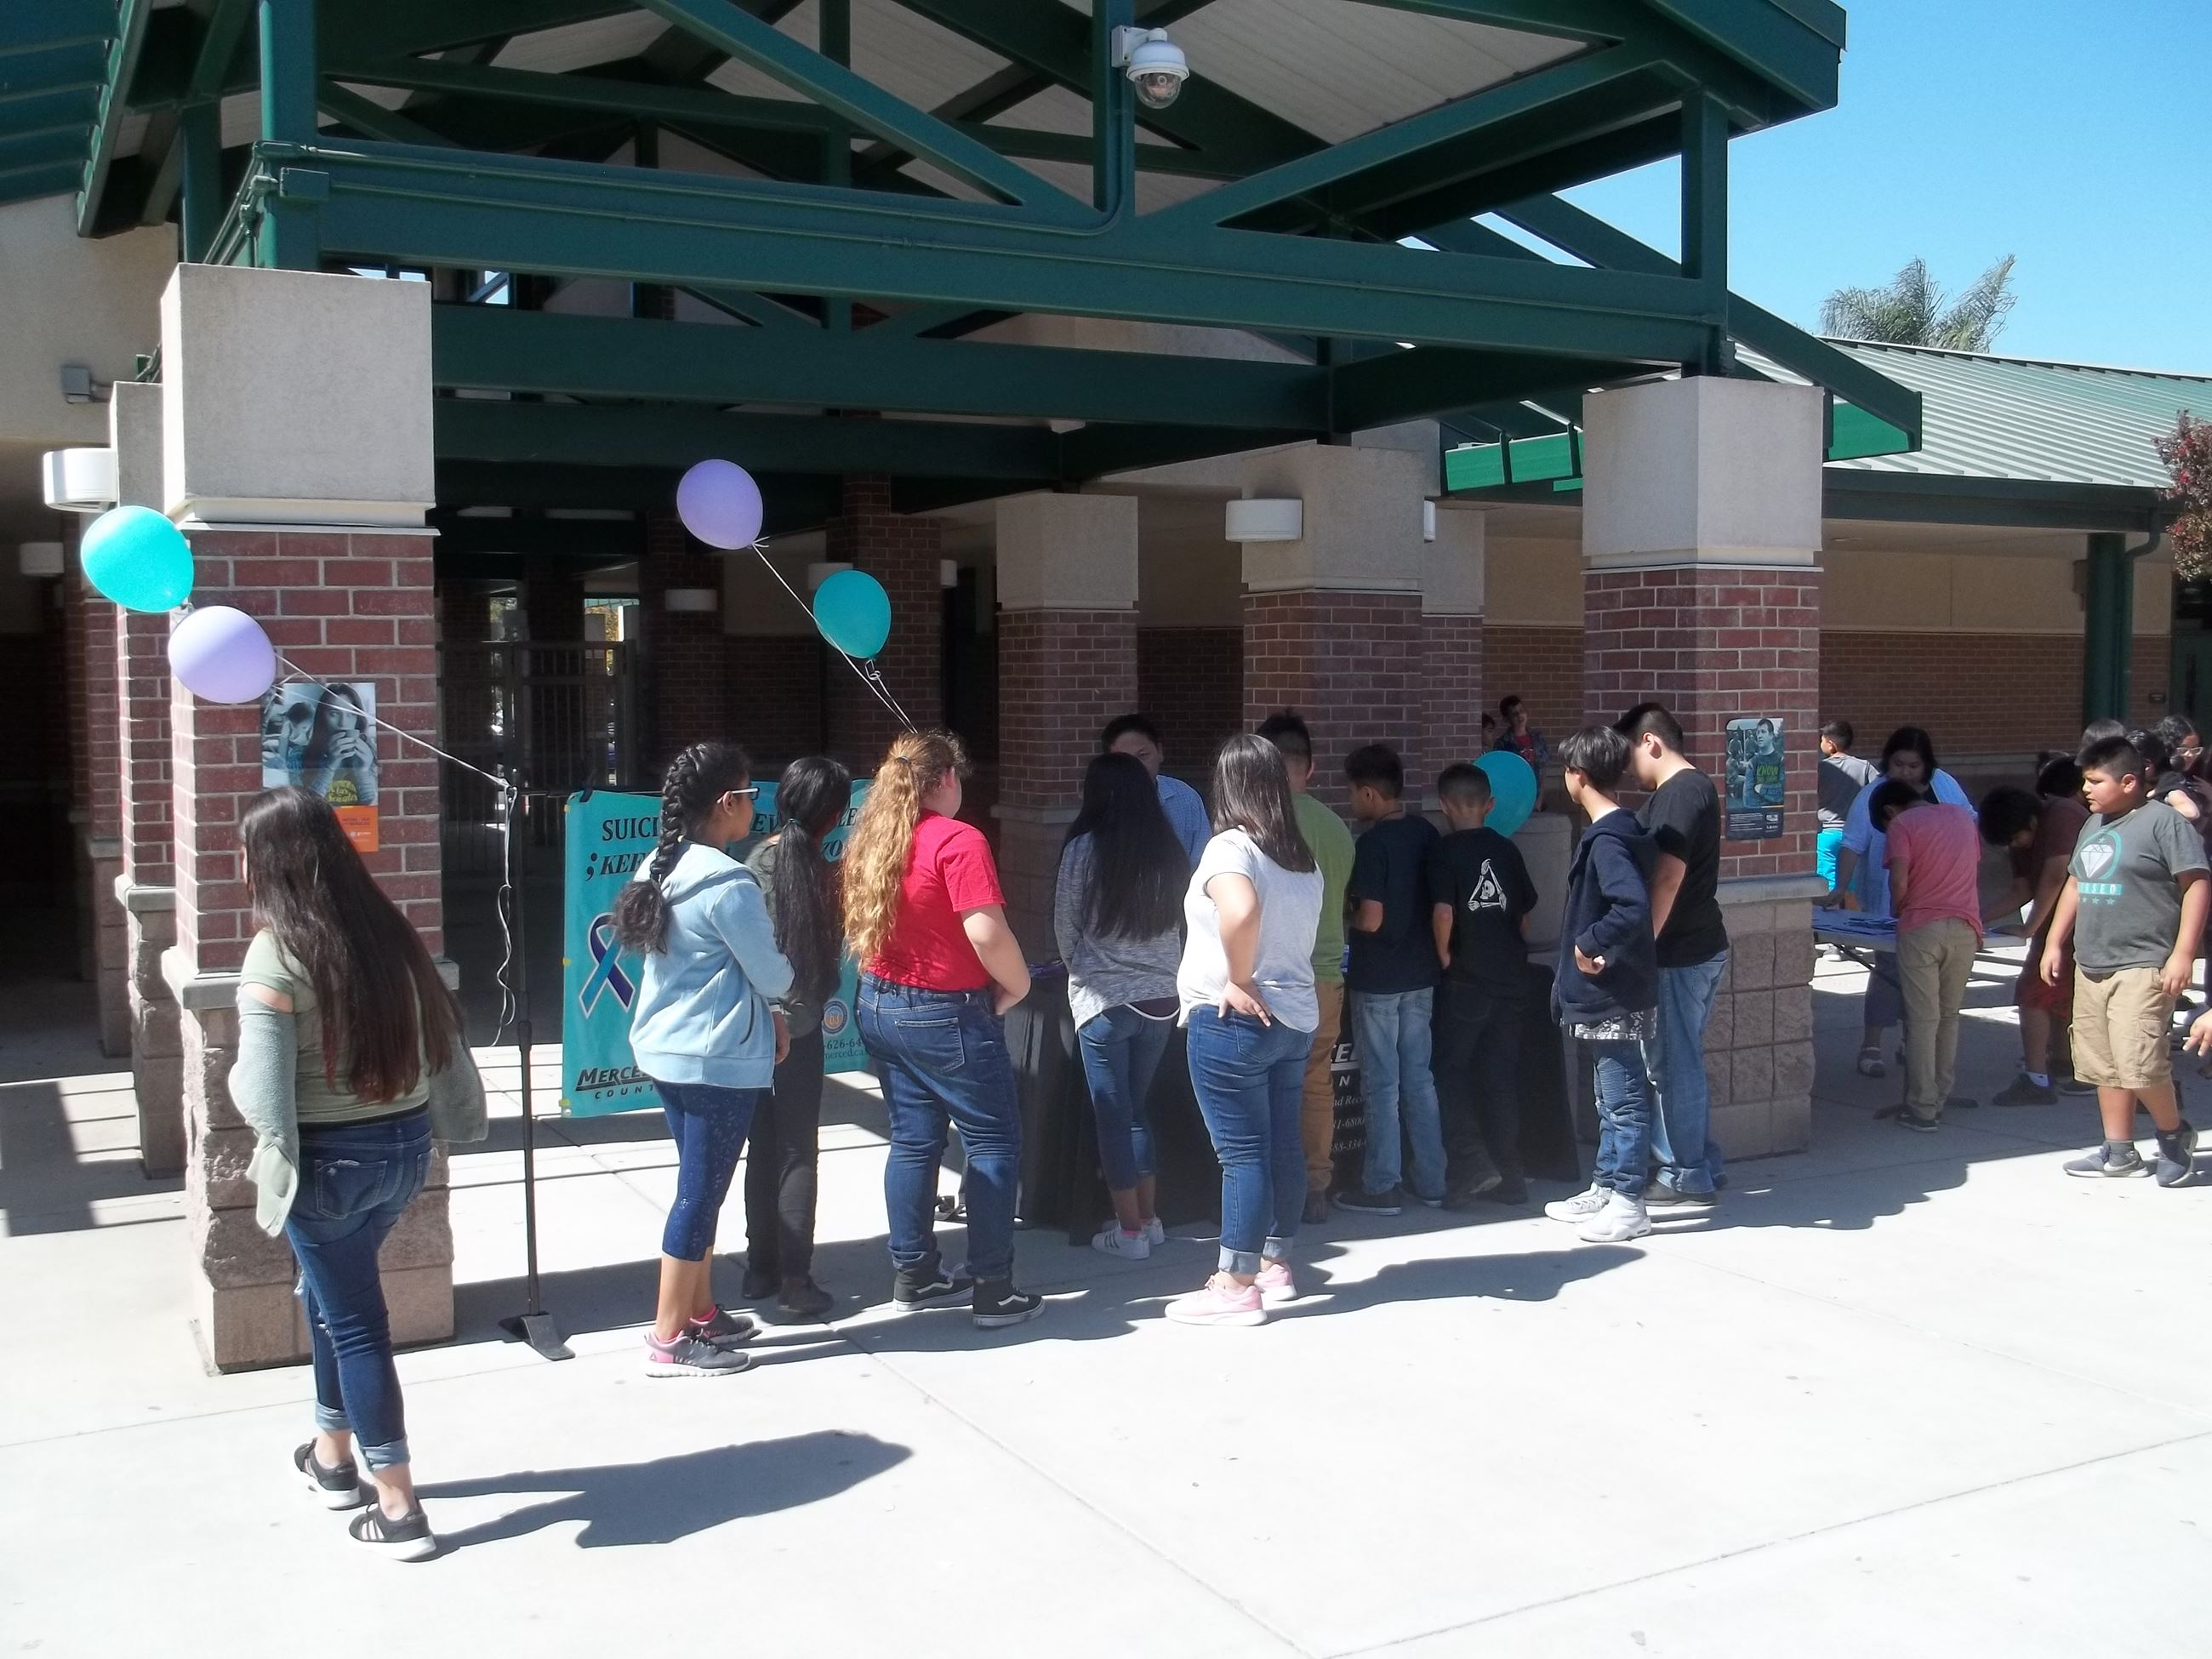 Picture of students at the Suicide Prevention resource table at Livingston Middle School Event on 09-10-18